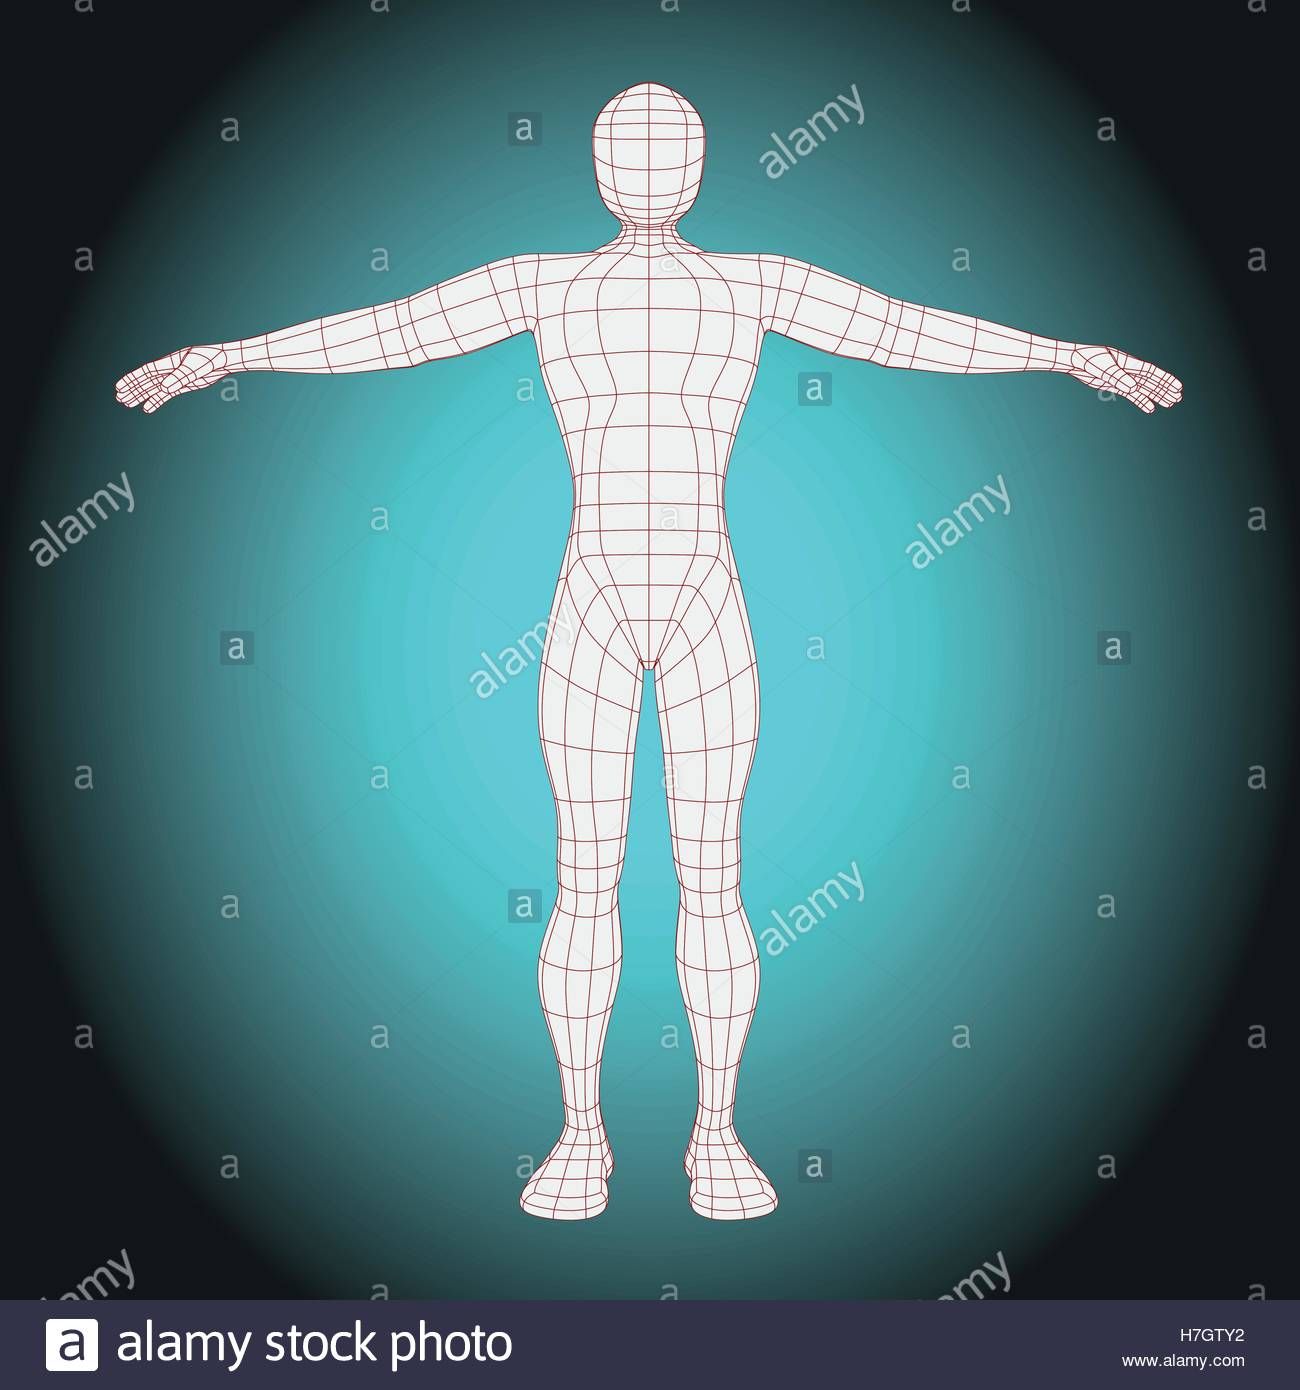 futuristic wireframe man body vector illustration of the human body stock vector image art alamy https www alamy com stock photo futuristic wireframe man body vector illustration of the human body 125145974 html